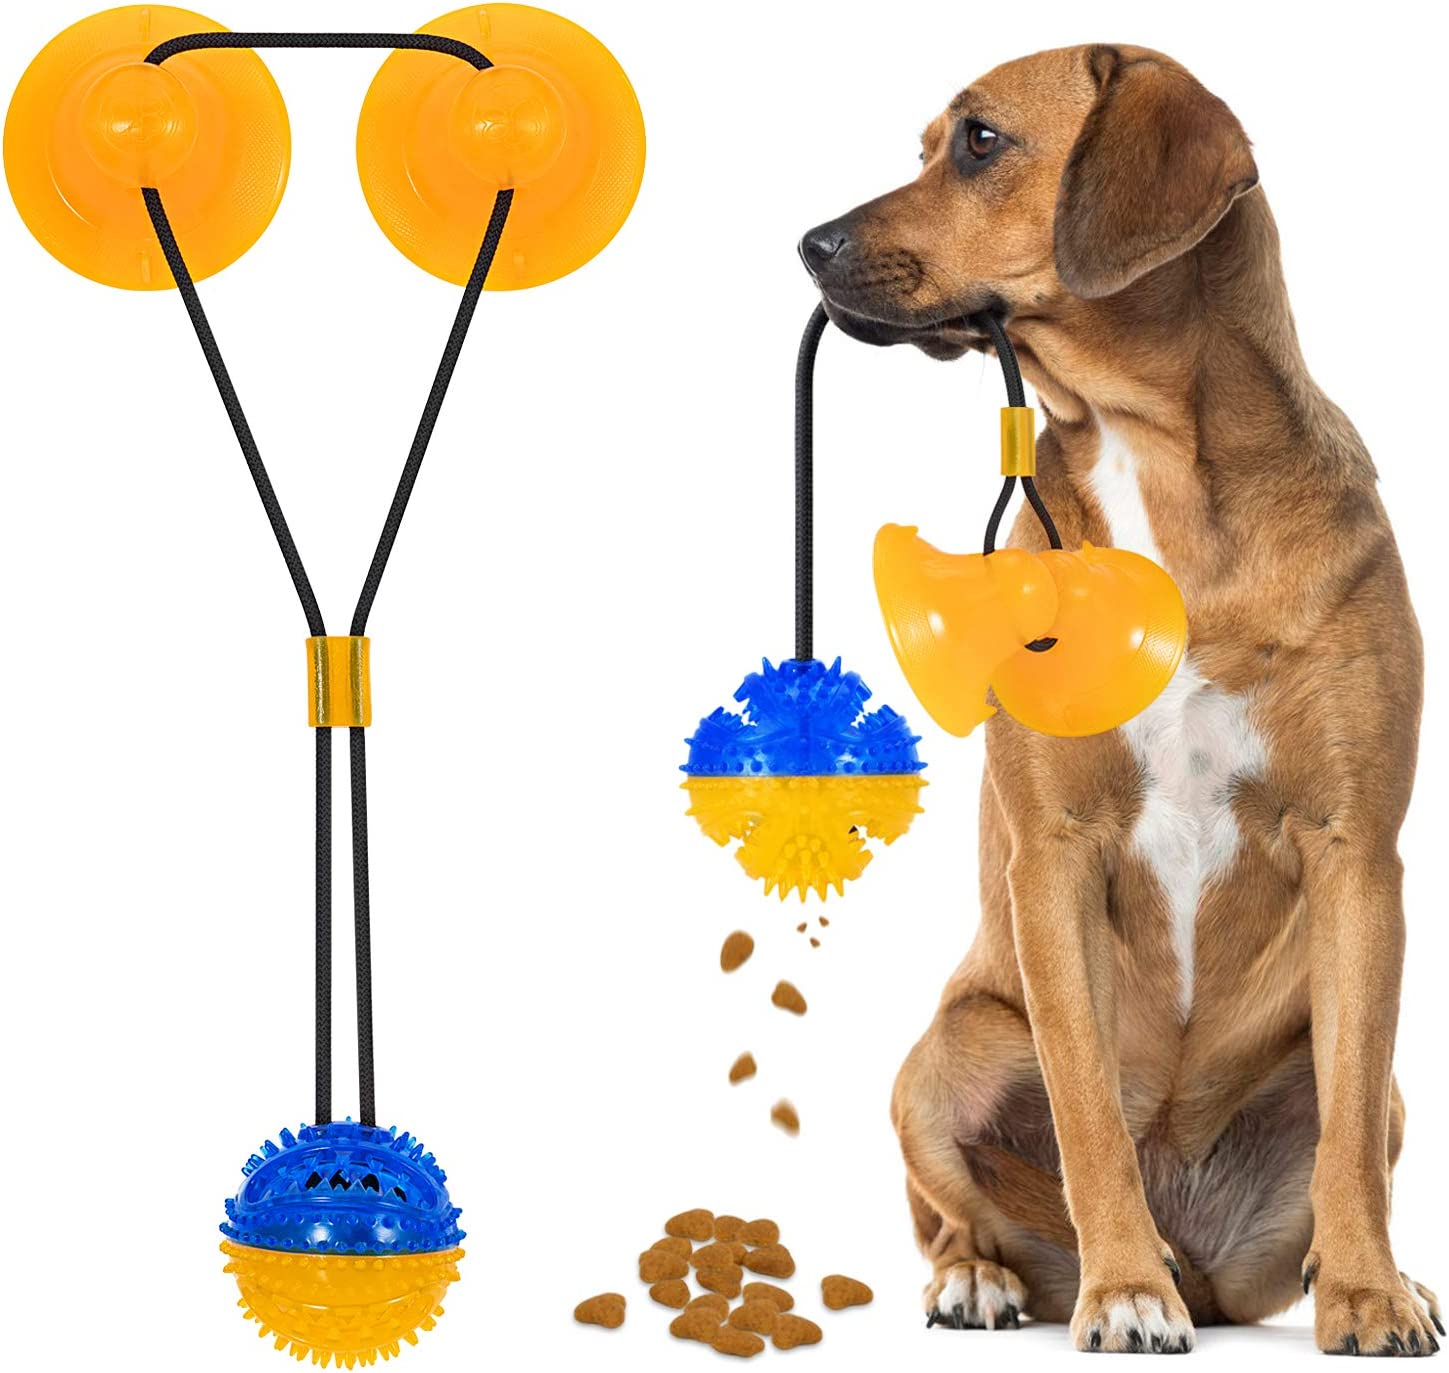 Suction Cup Dog Toys 2020 Upgraded Pet Molar Bite Toy with 2 Suction Cups, Puppy Rope Toys for Playing Tug of War, Interactive Dog Chew Toys for